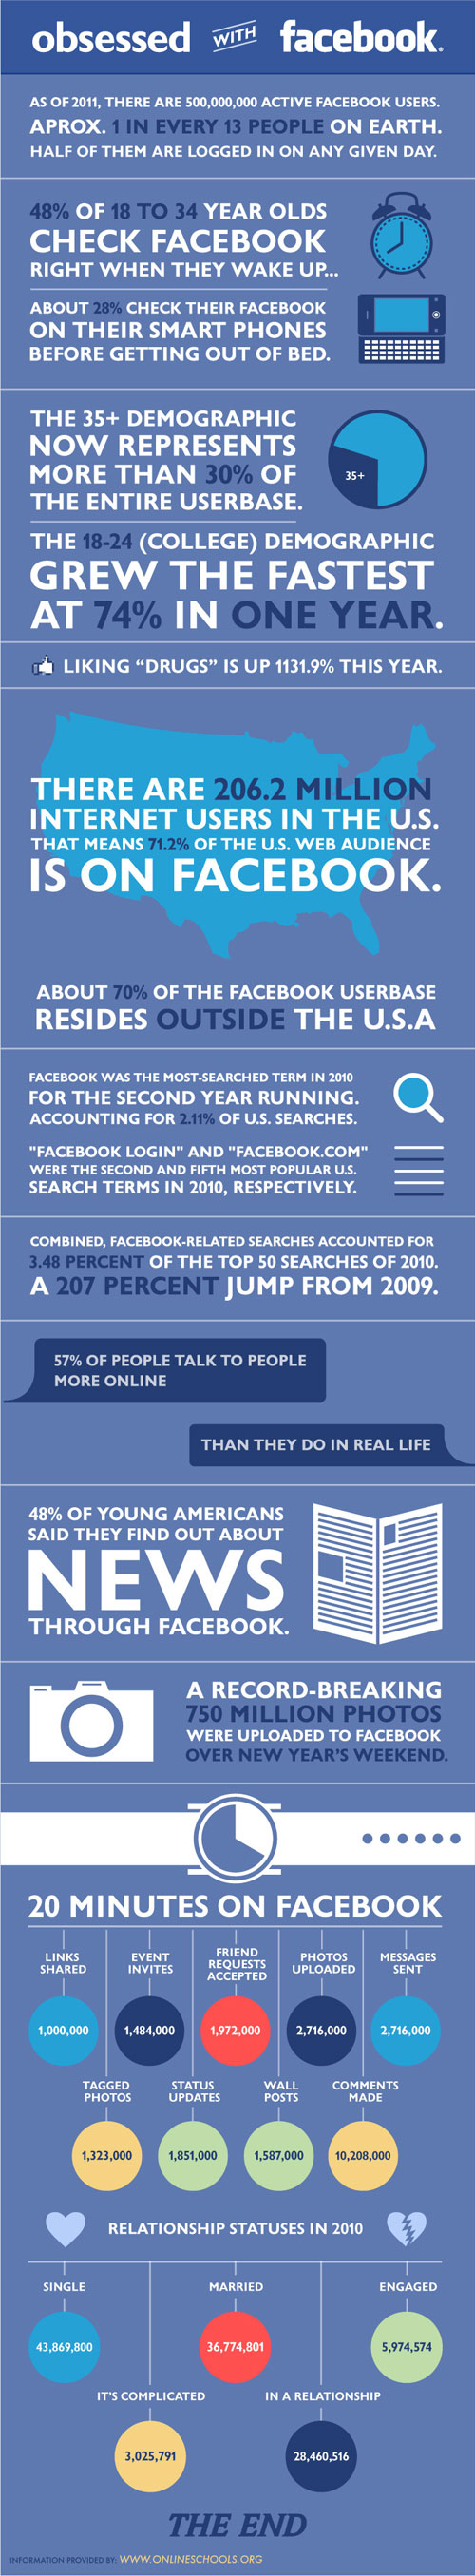 Facebook : Obsession